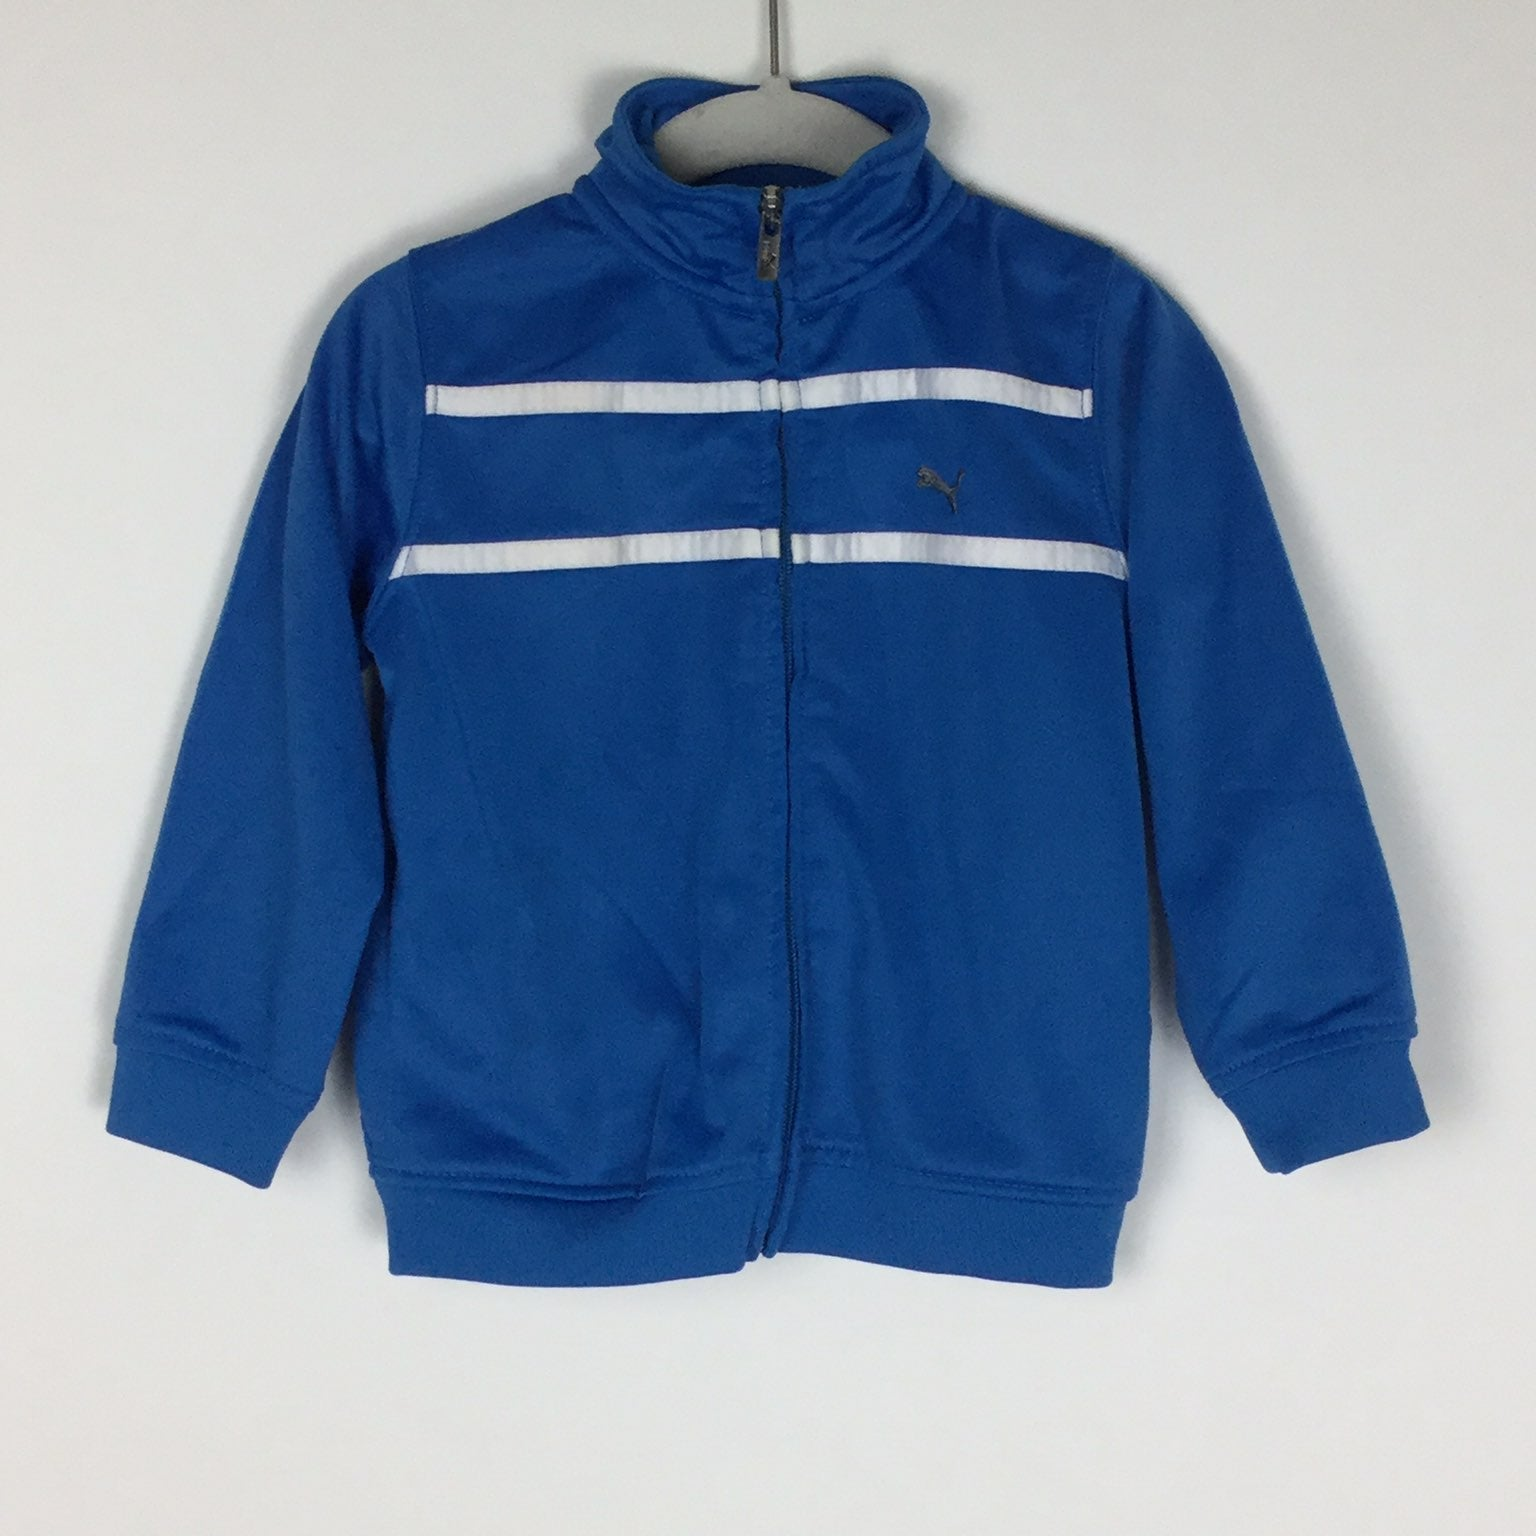 Kids Puma Warm Up Jacket Size 24 Months